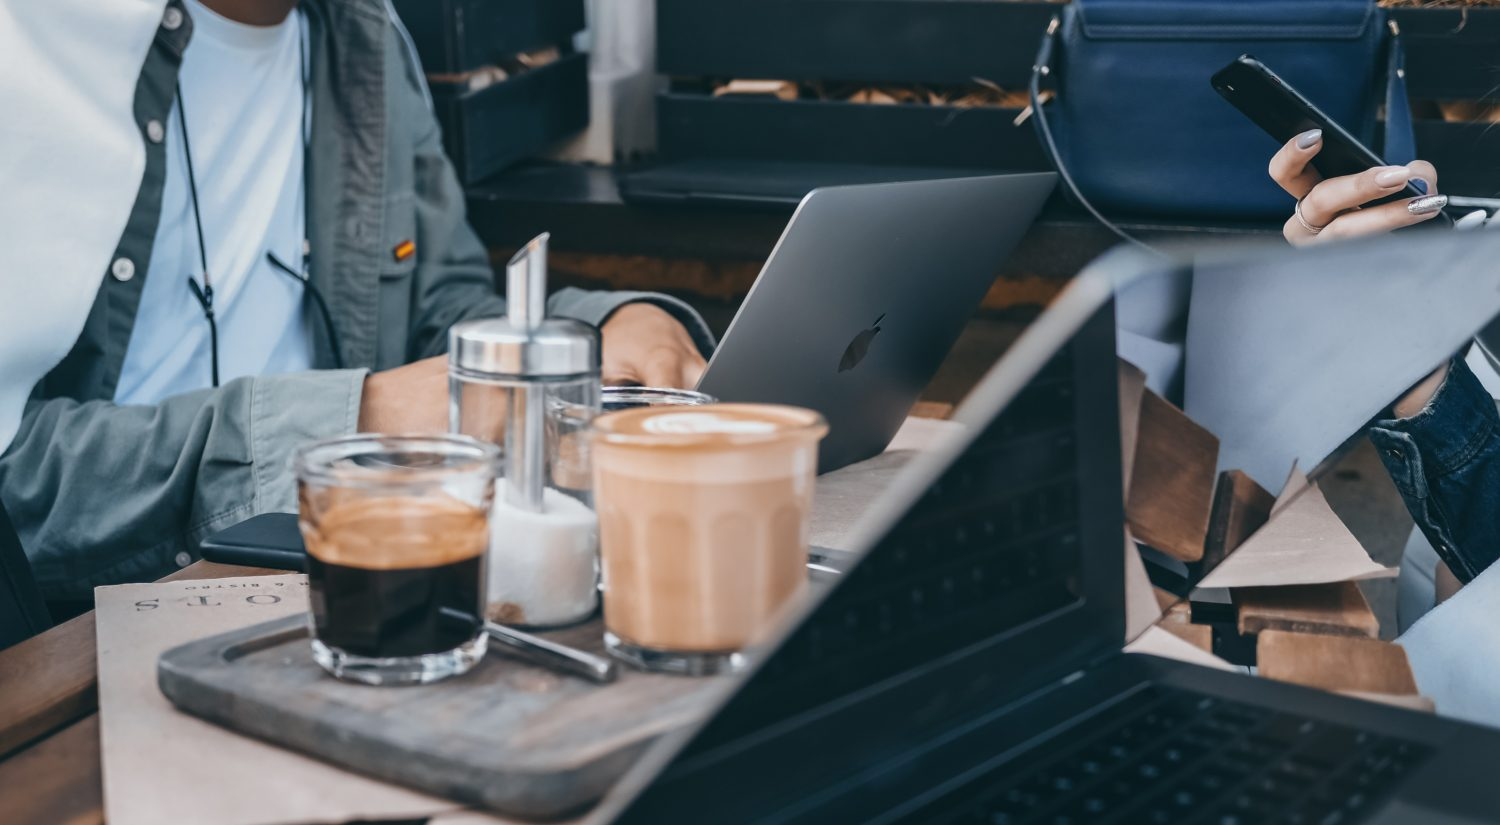 Couple working with laptops at cafe